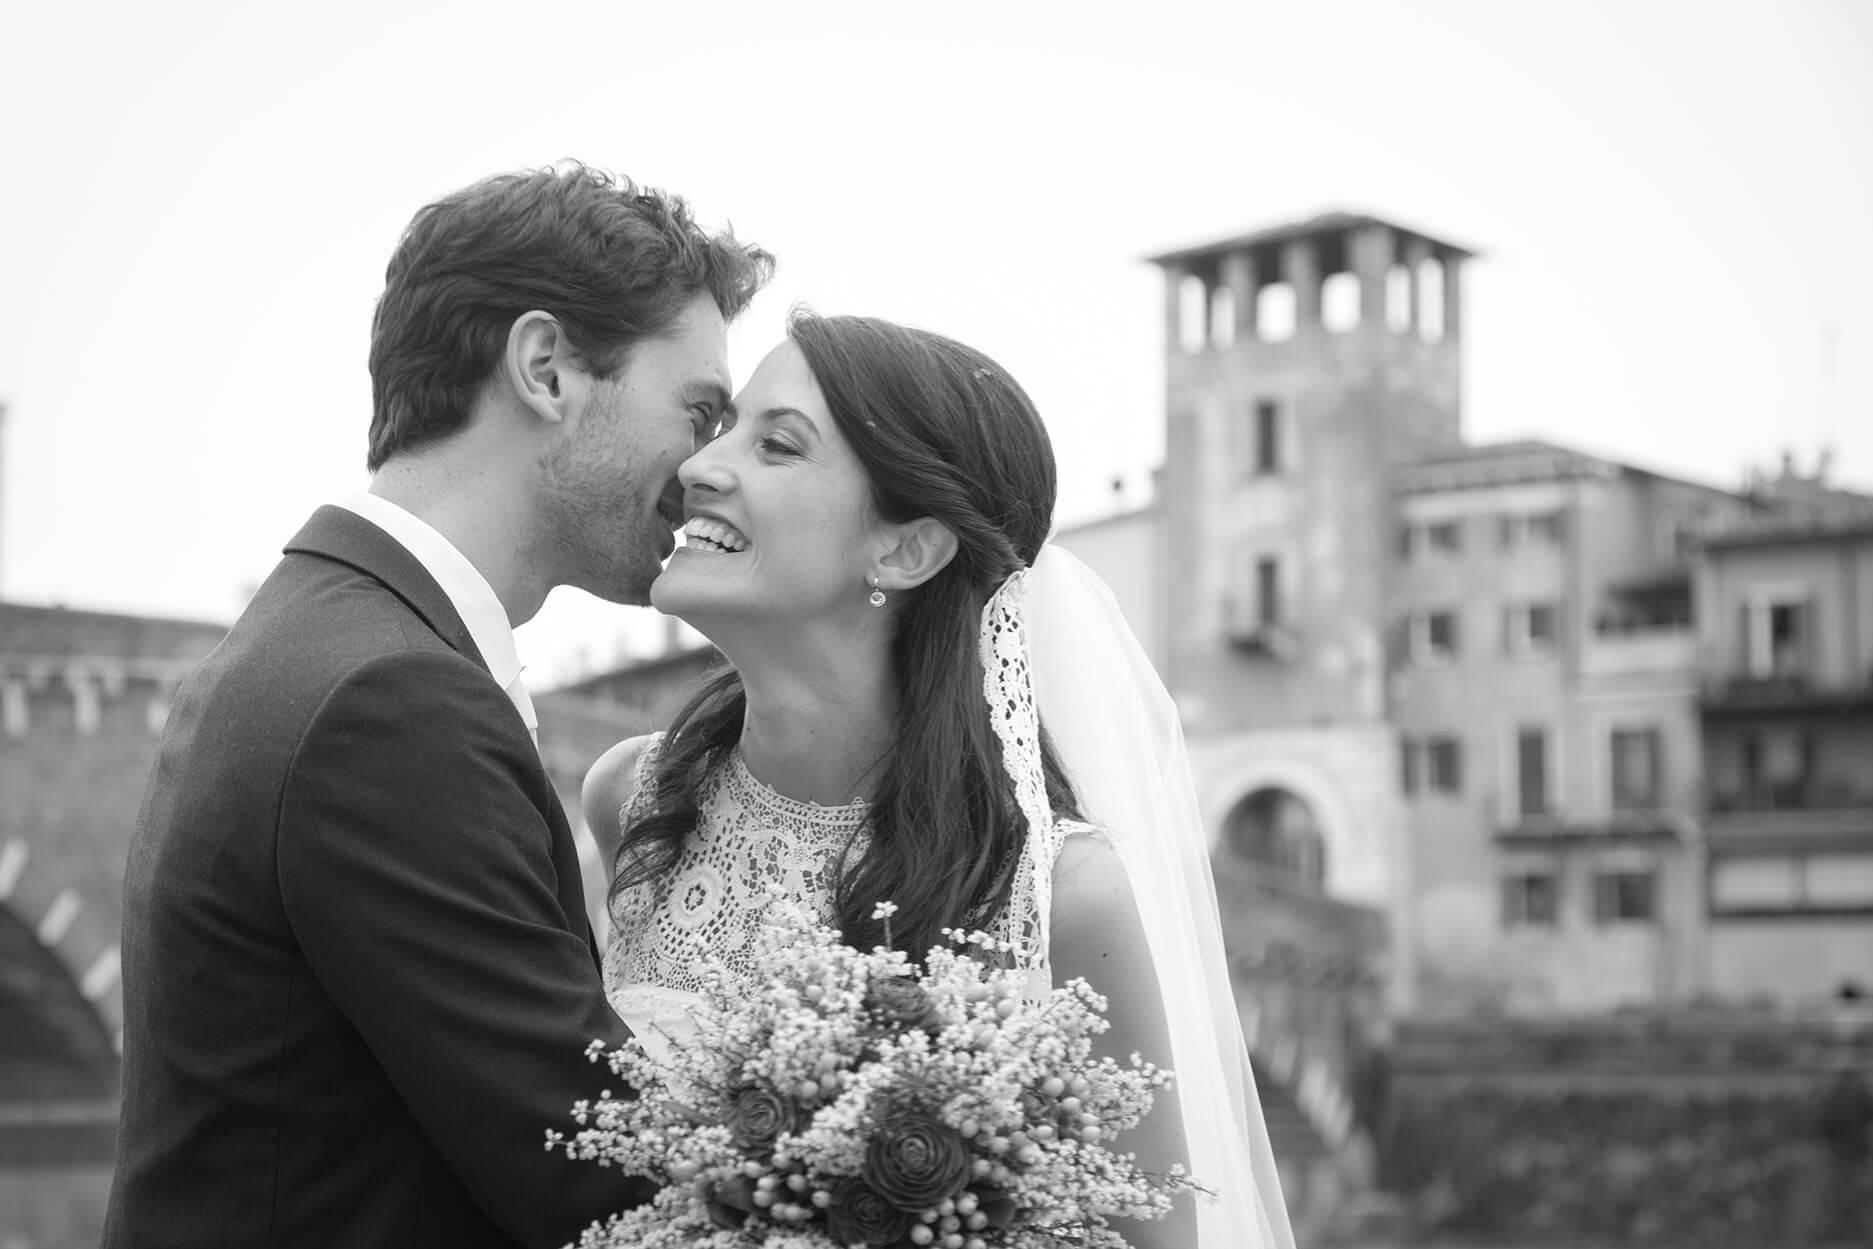 Francesca-Ferrati-WeddingIMG_0940